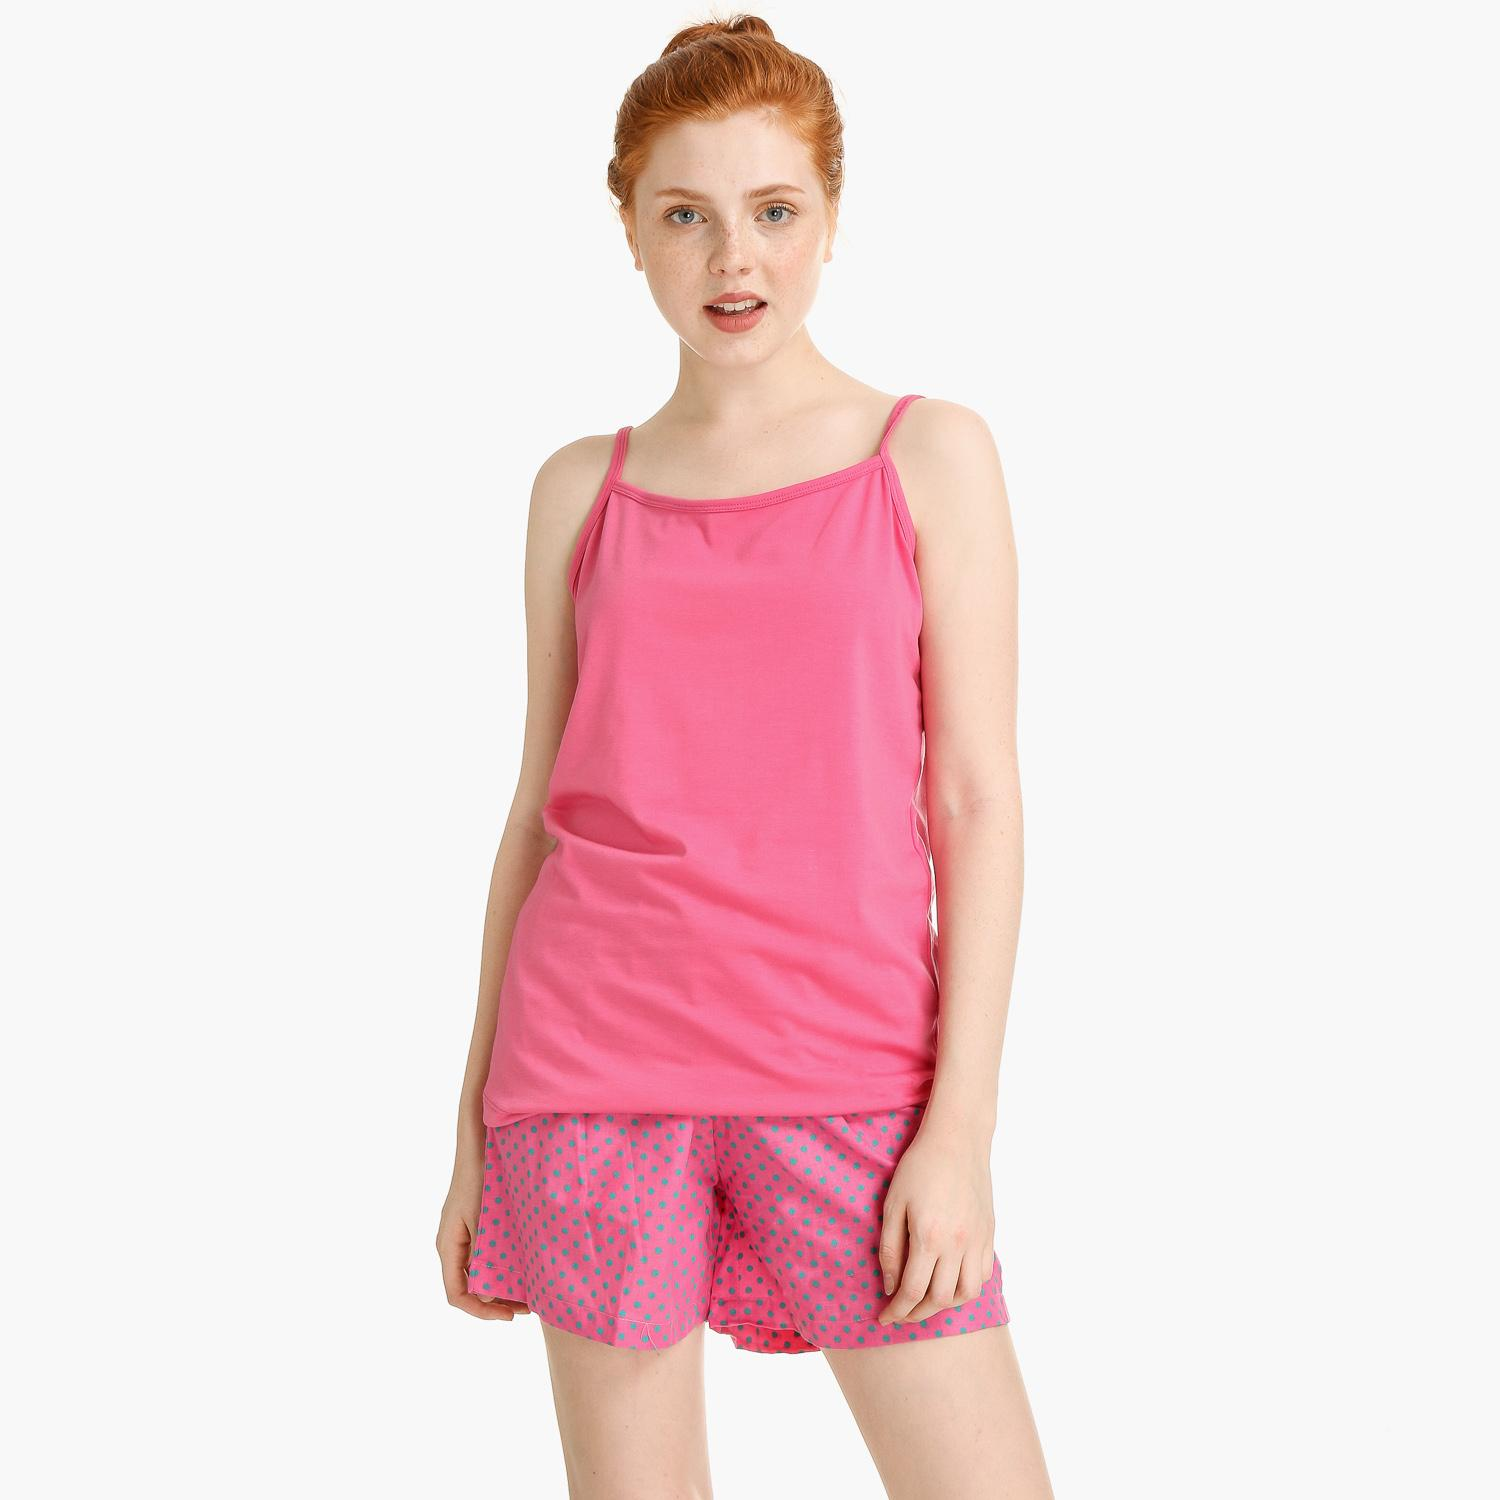 103de078c63 SM Woman Sleep Wear Free Size Polka Dot Top And Shorts Set (Pink)